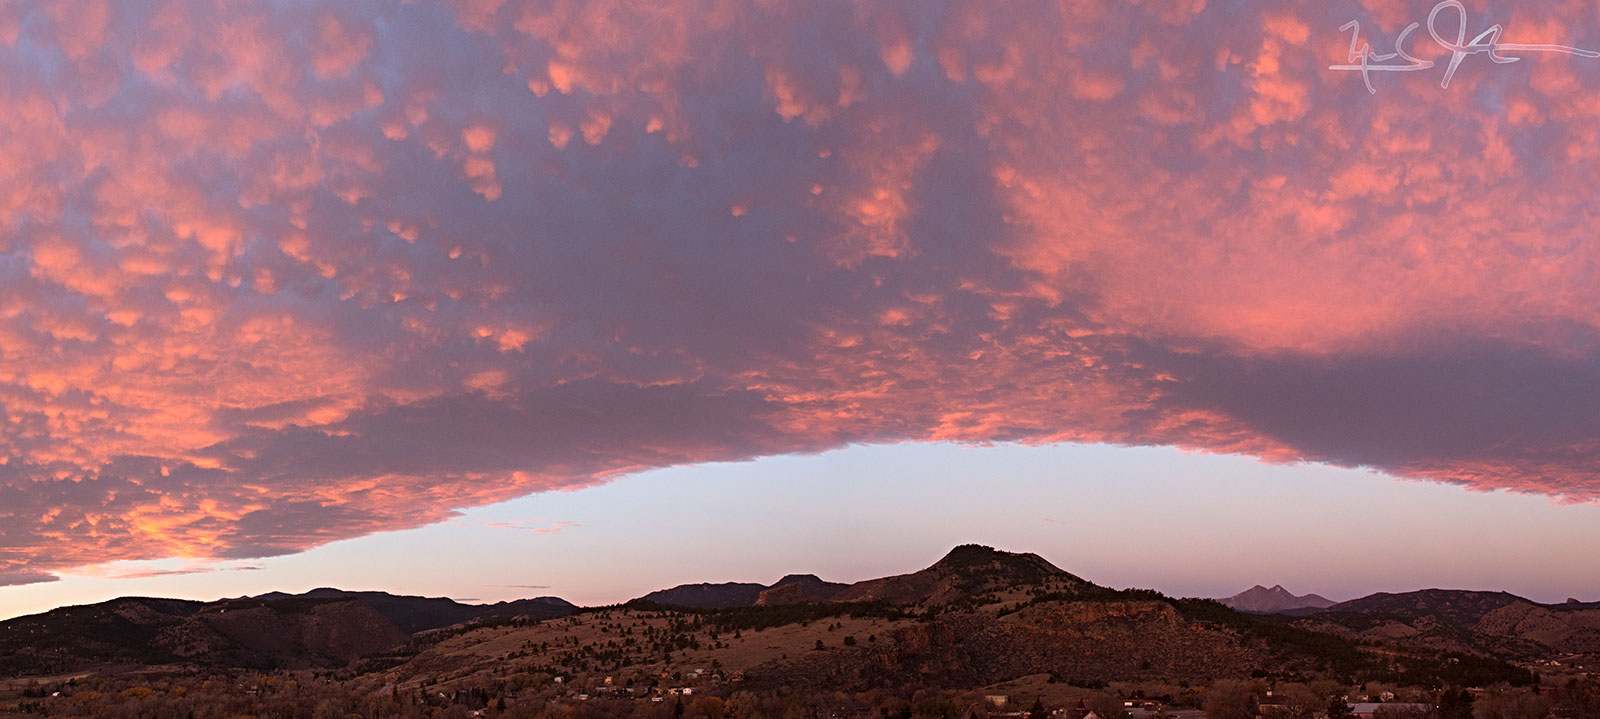 Sunrise illuminates clouds over the Continental Divide from the vicinity of Lyons, CO.